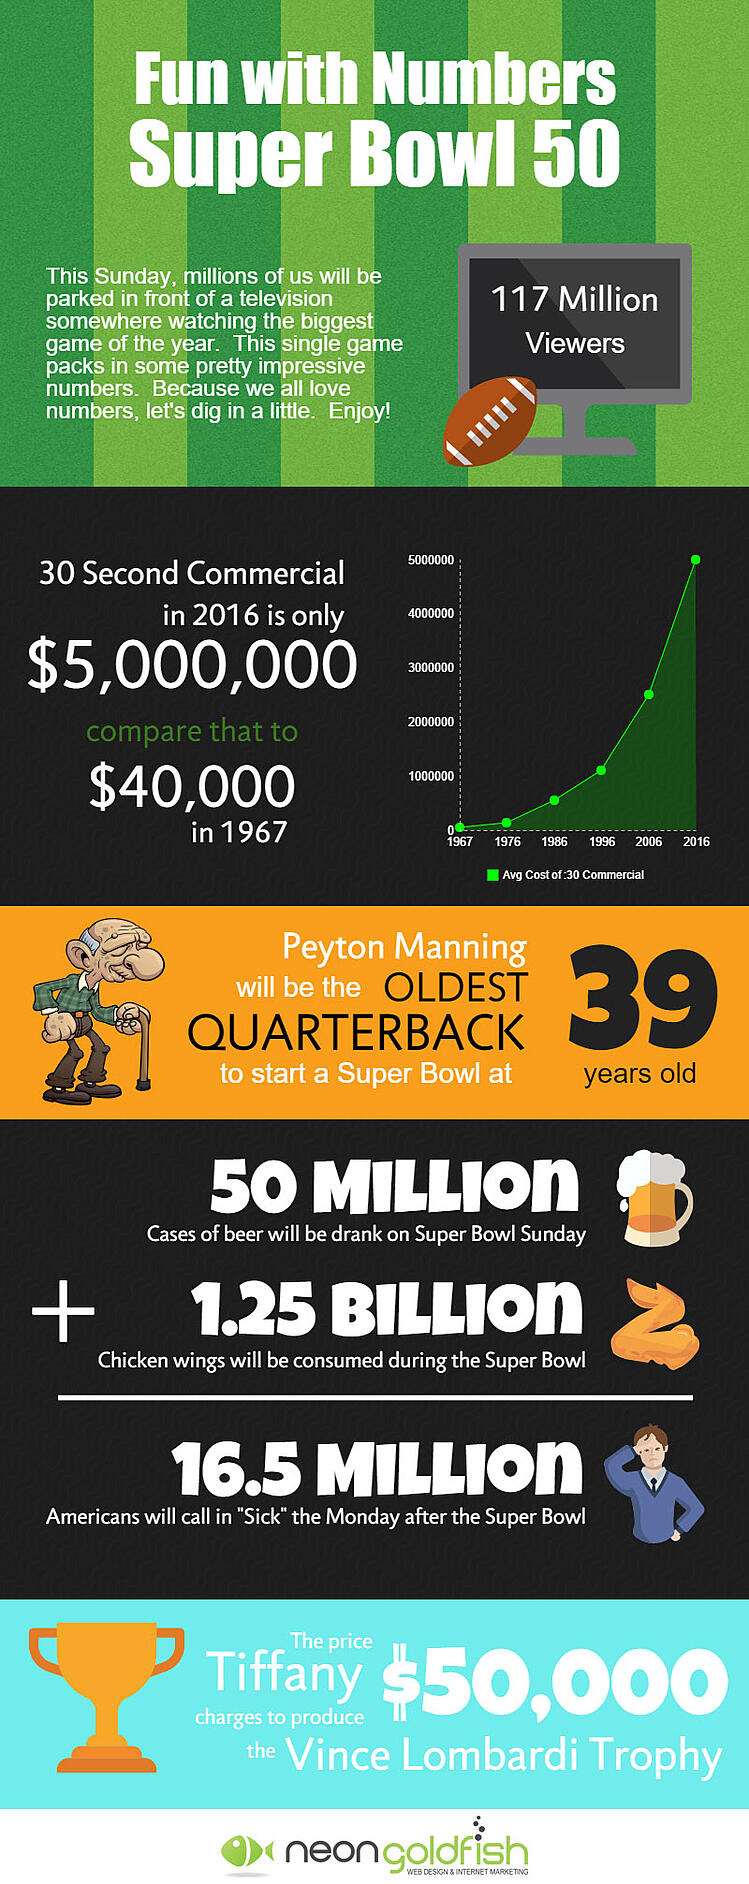 Superbowl 50 infographic